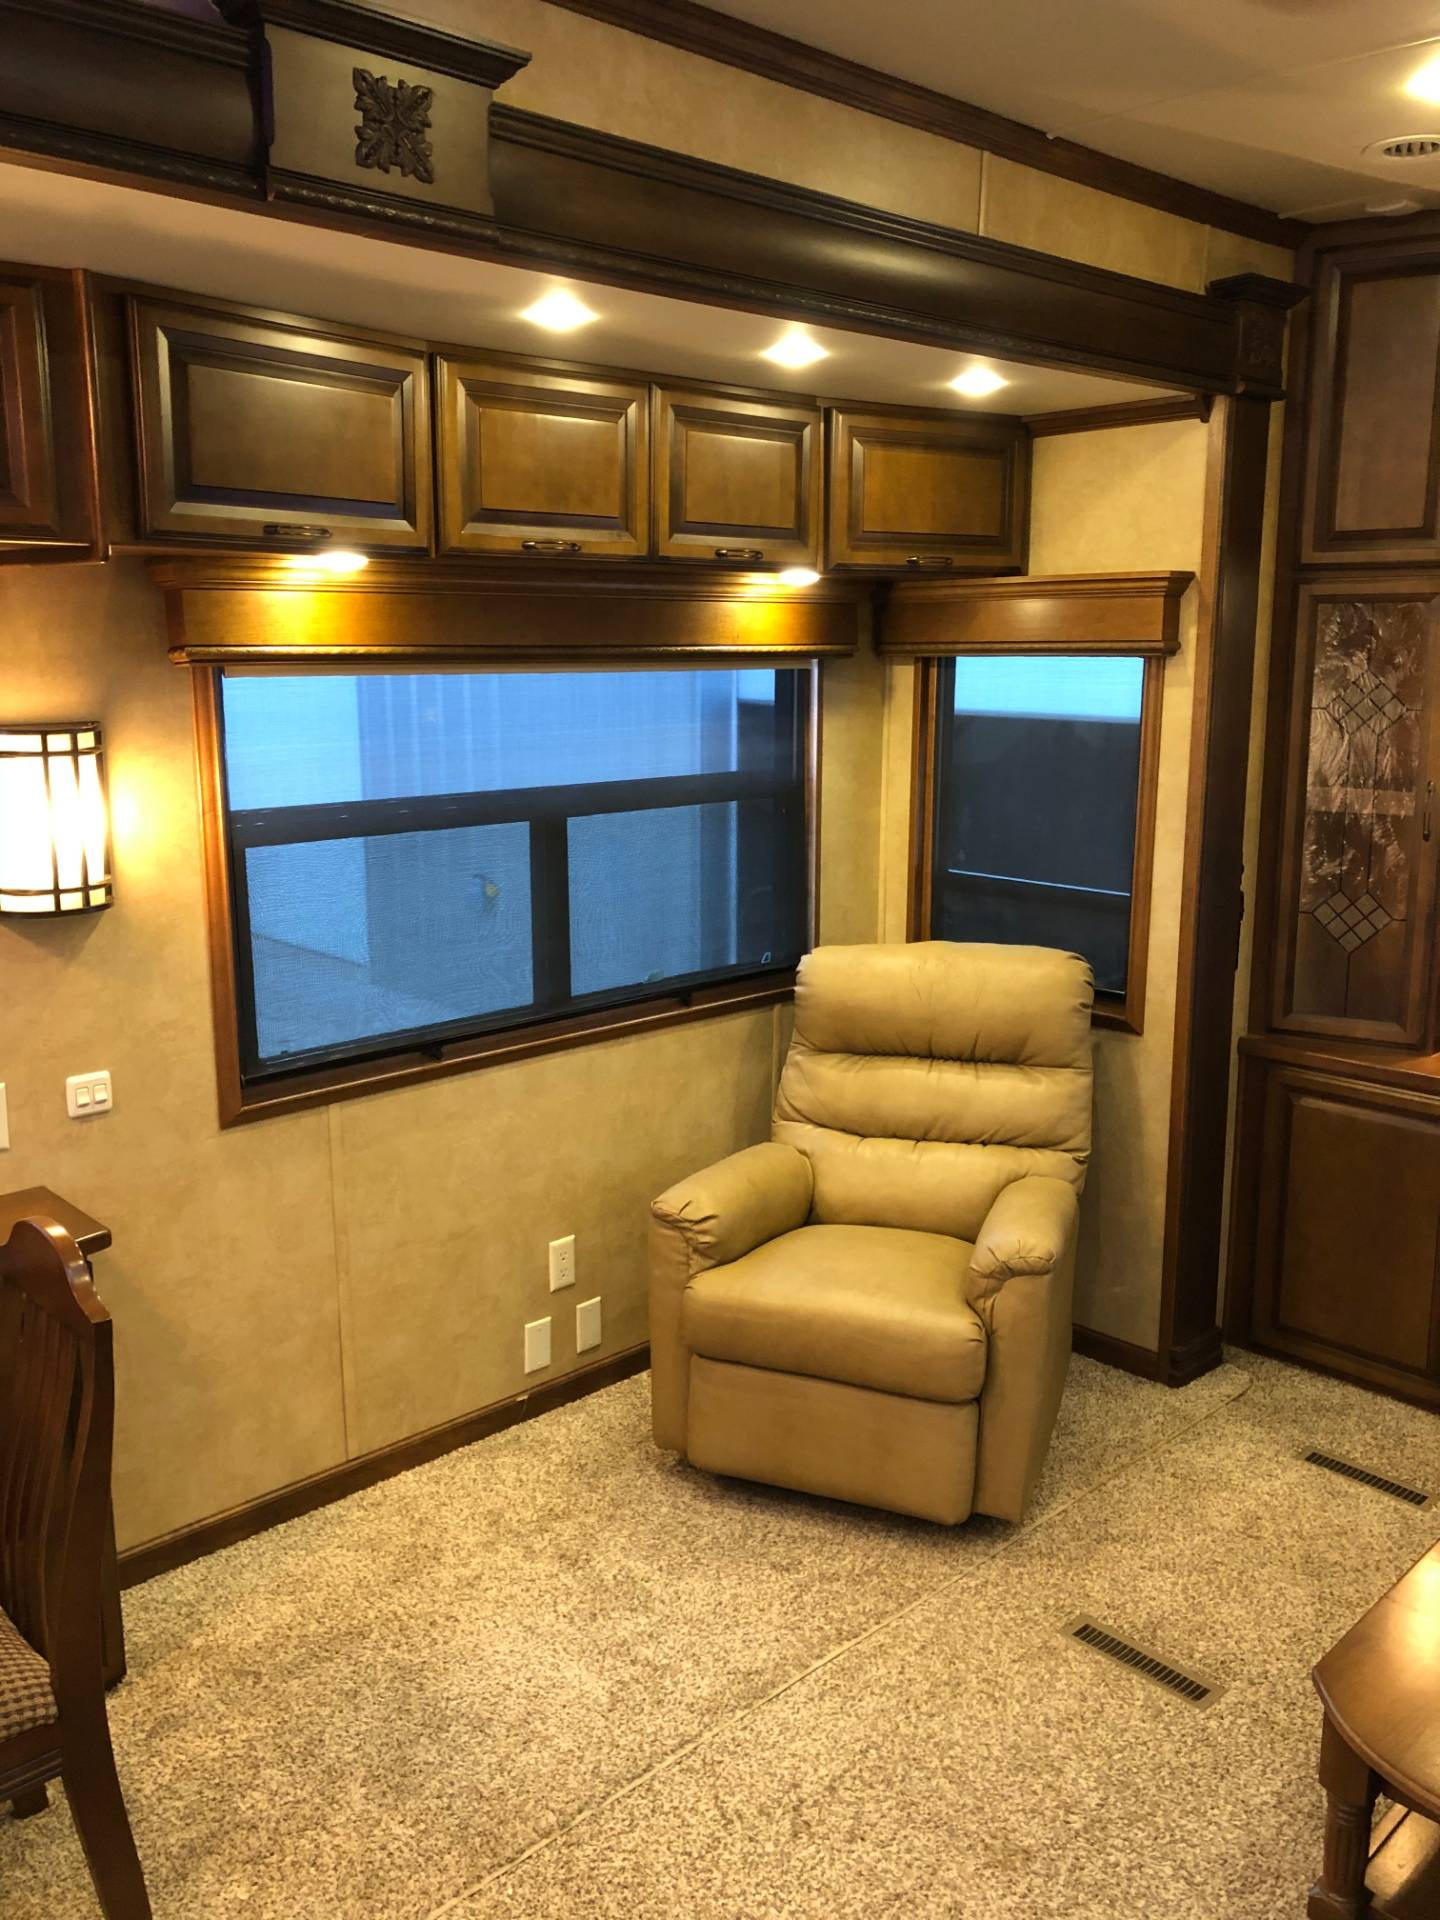 2014 DRV Mobile D Suites 39RESB3 in Wolfforth, Texas - Photo 15